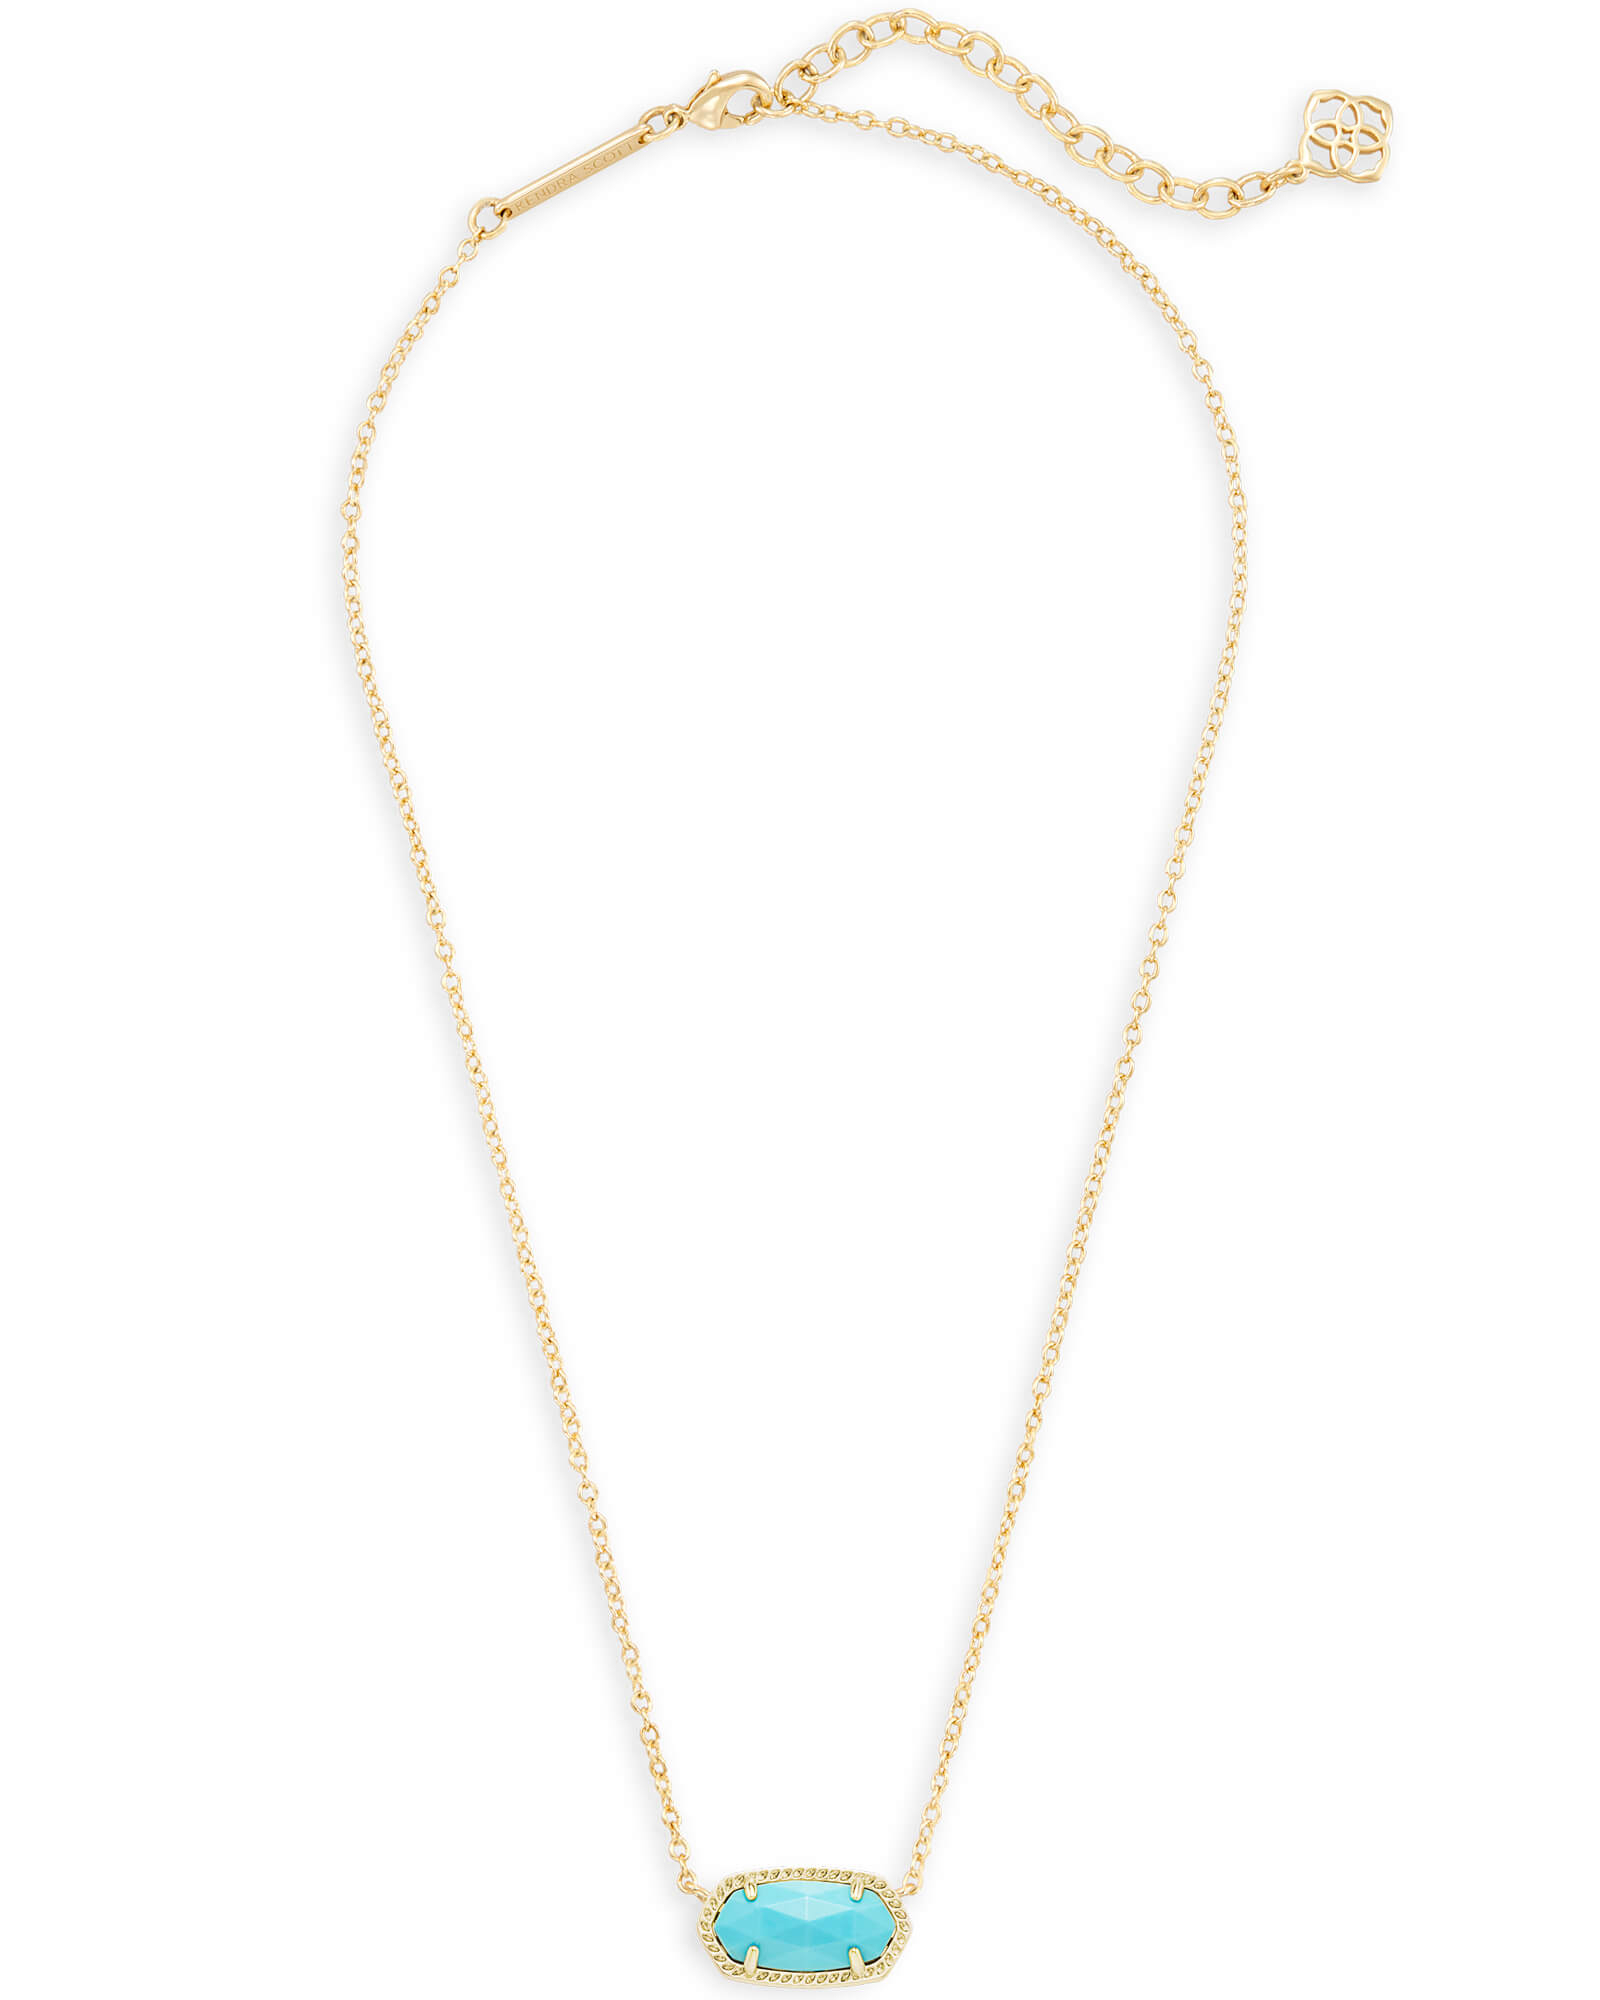 Elisa Gold Pendant Necklace In Blue Turquoise | Kendra Scott Inside 2019 London Blue Crystal December Droplet Pendant Necklaces (Gallery 10 of 25)